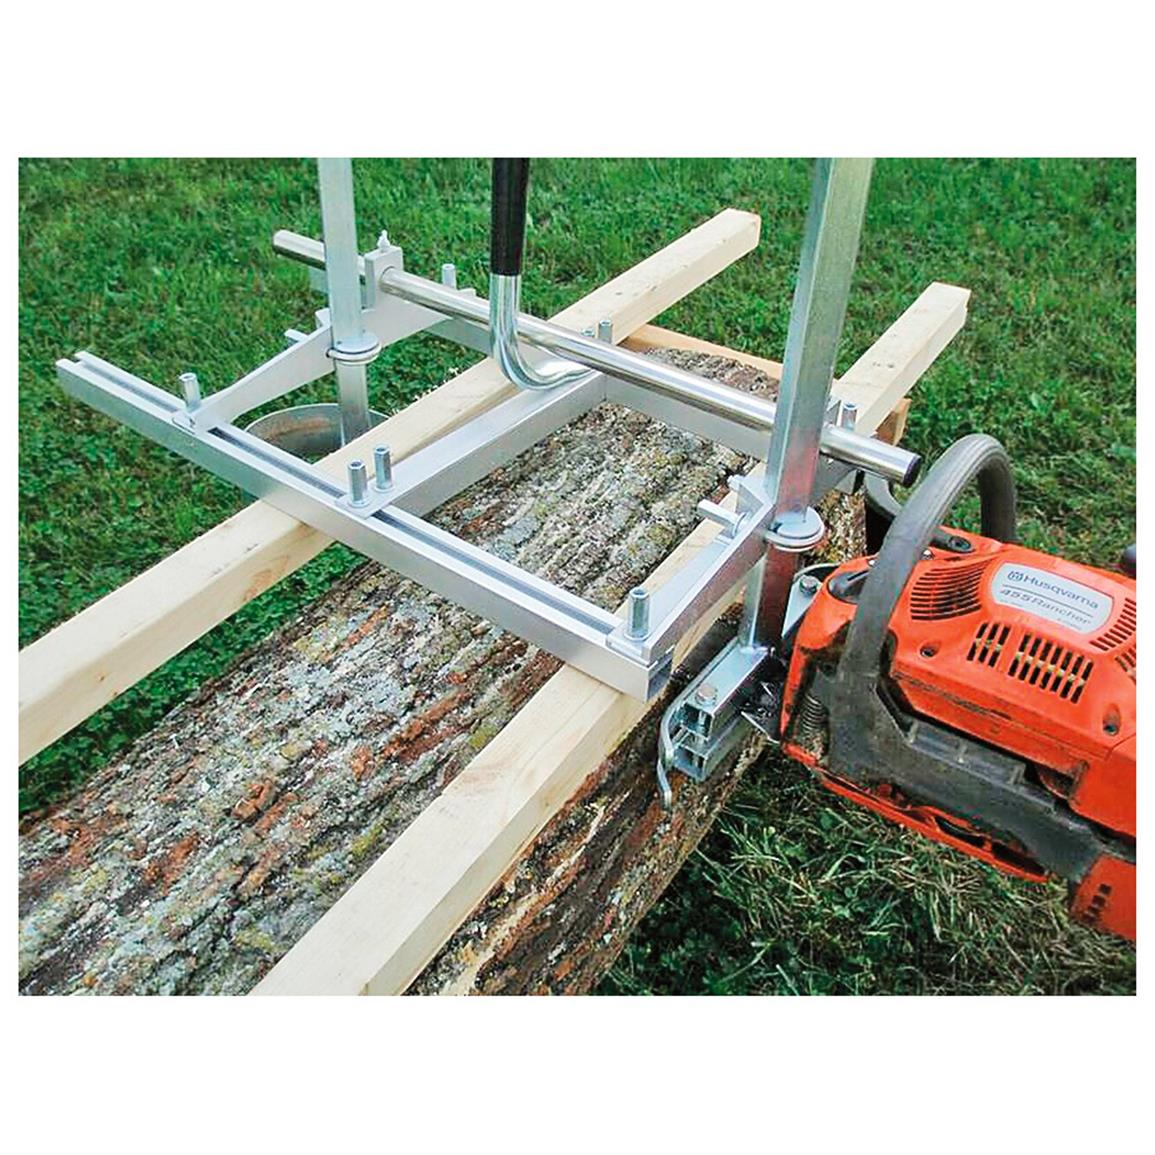 High quality tool will give you accurate and valuable lumber from your chainsaw.